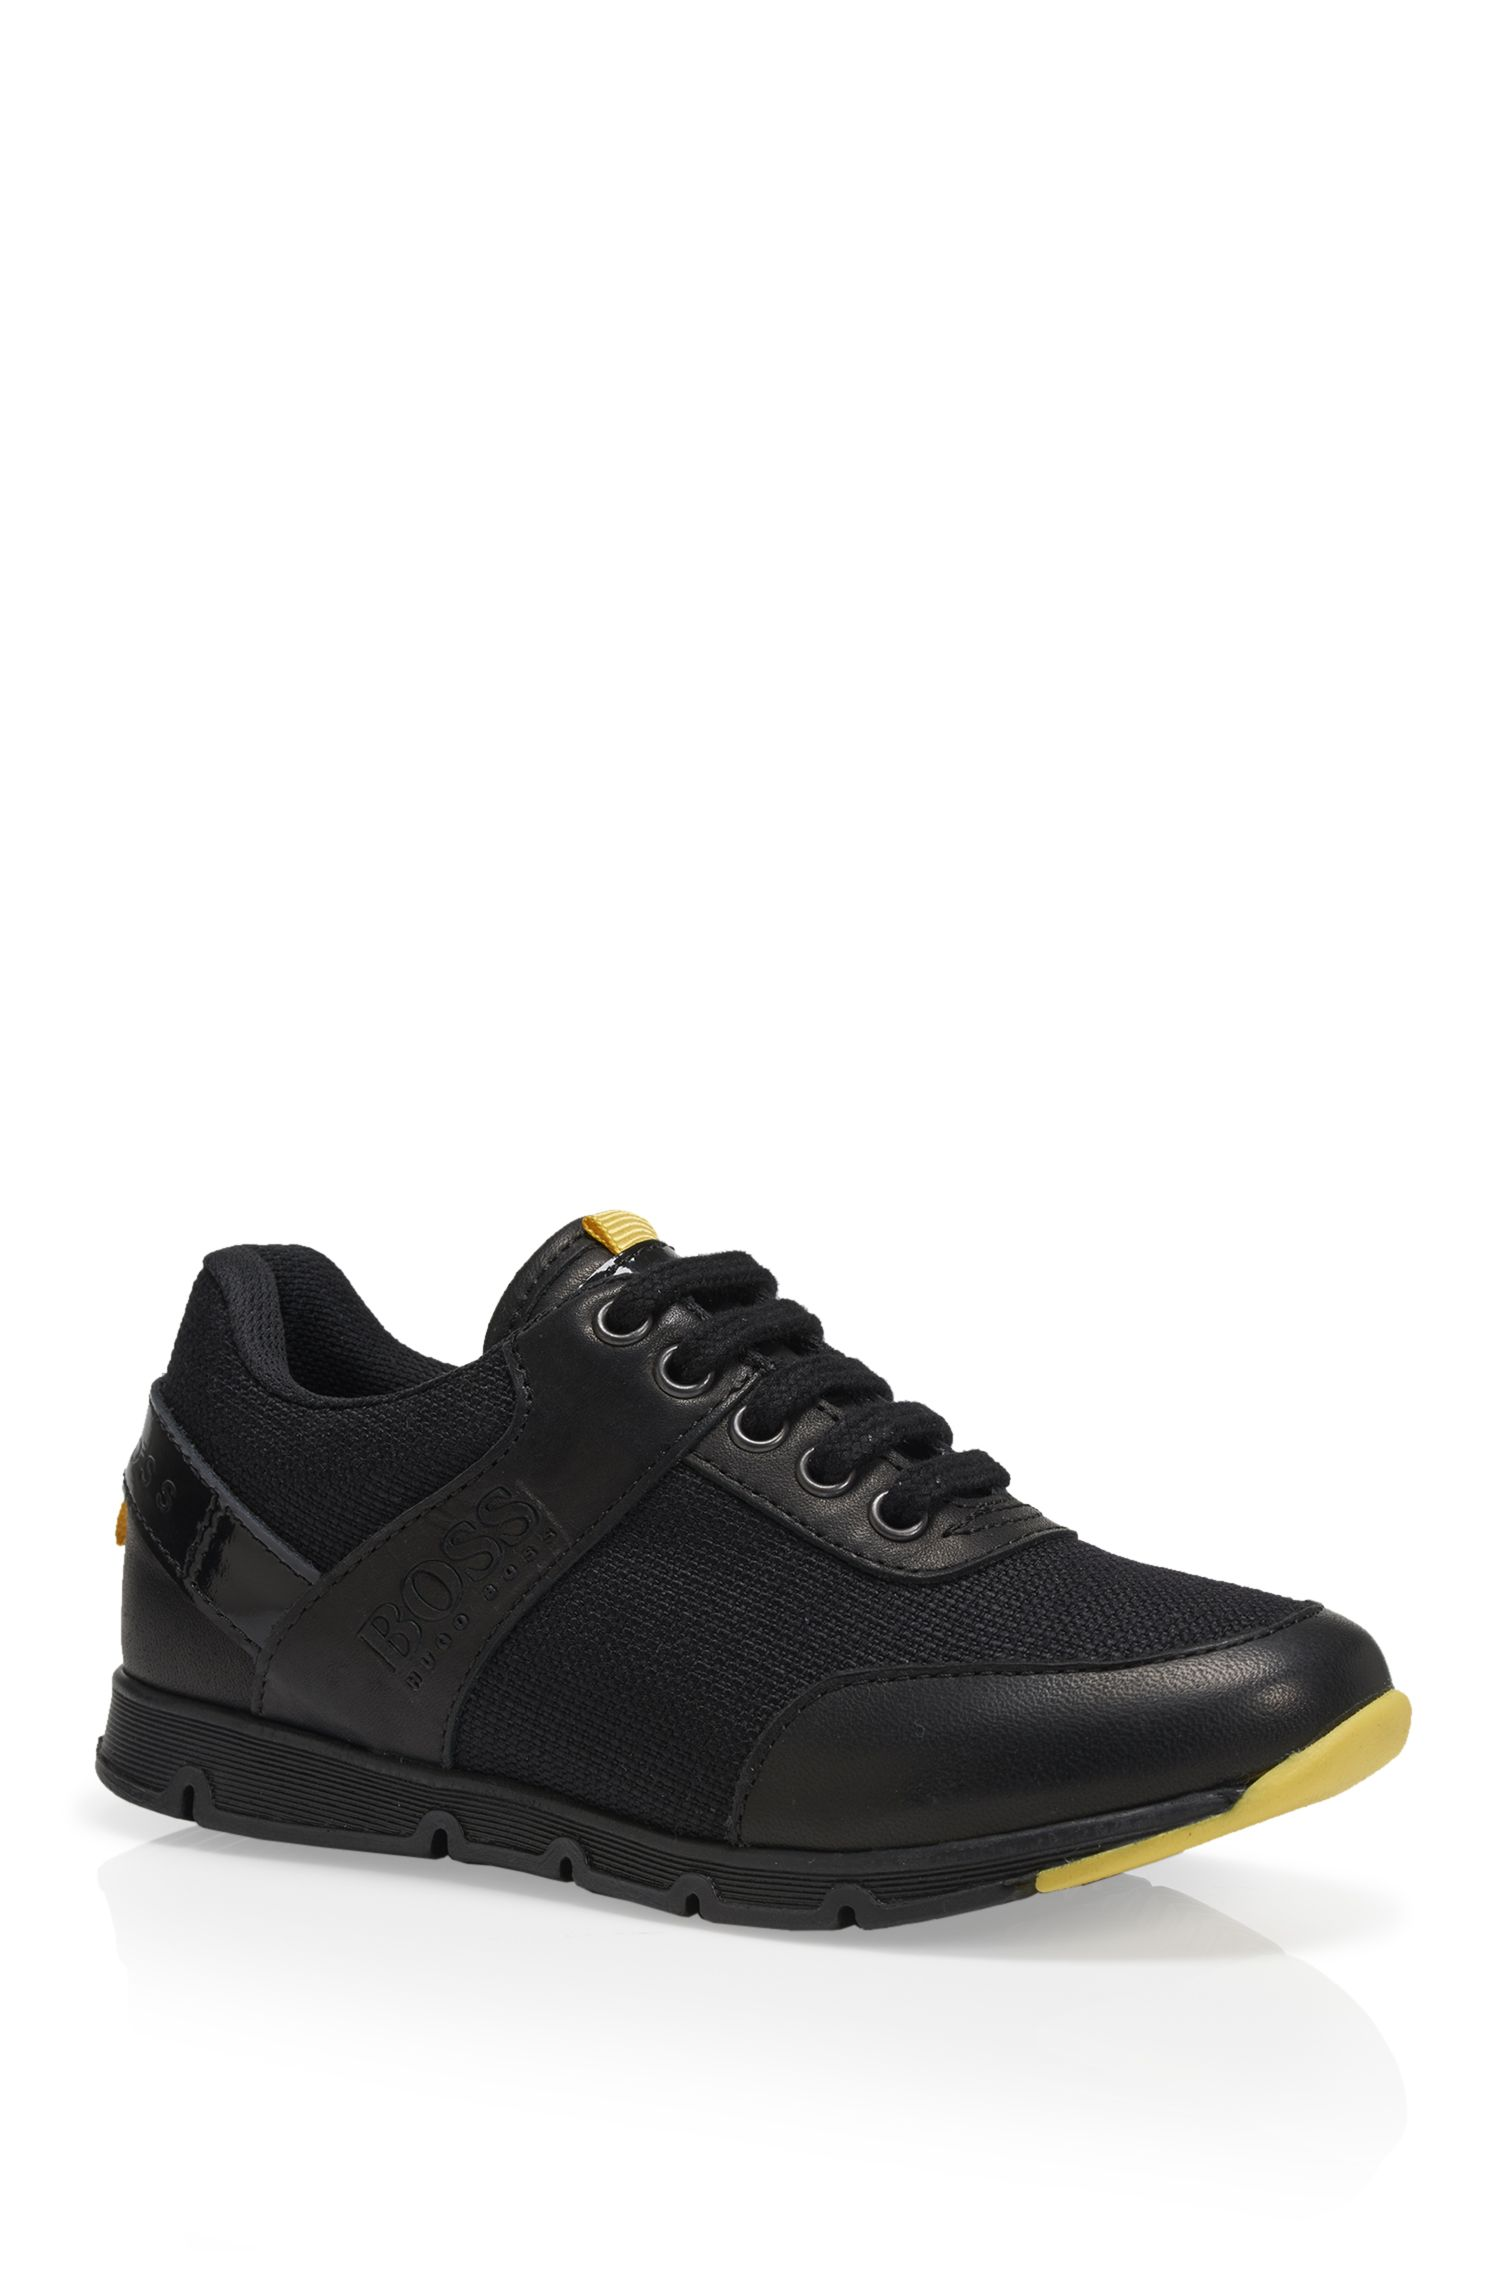 'J29113' | Boys Leather Sneakers